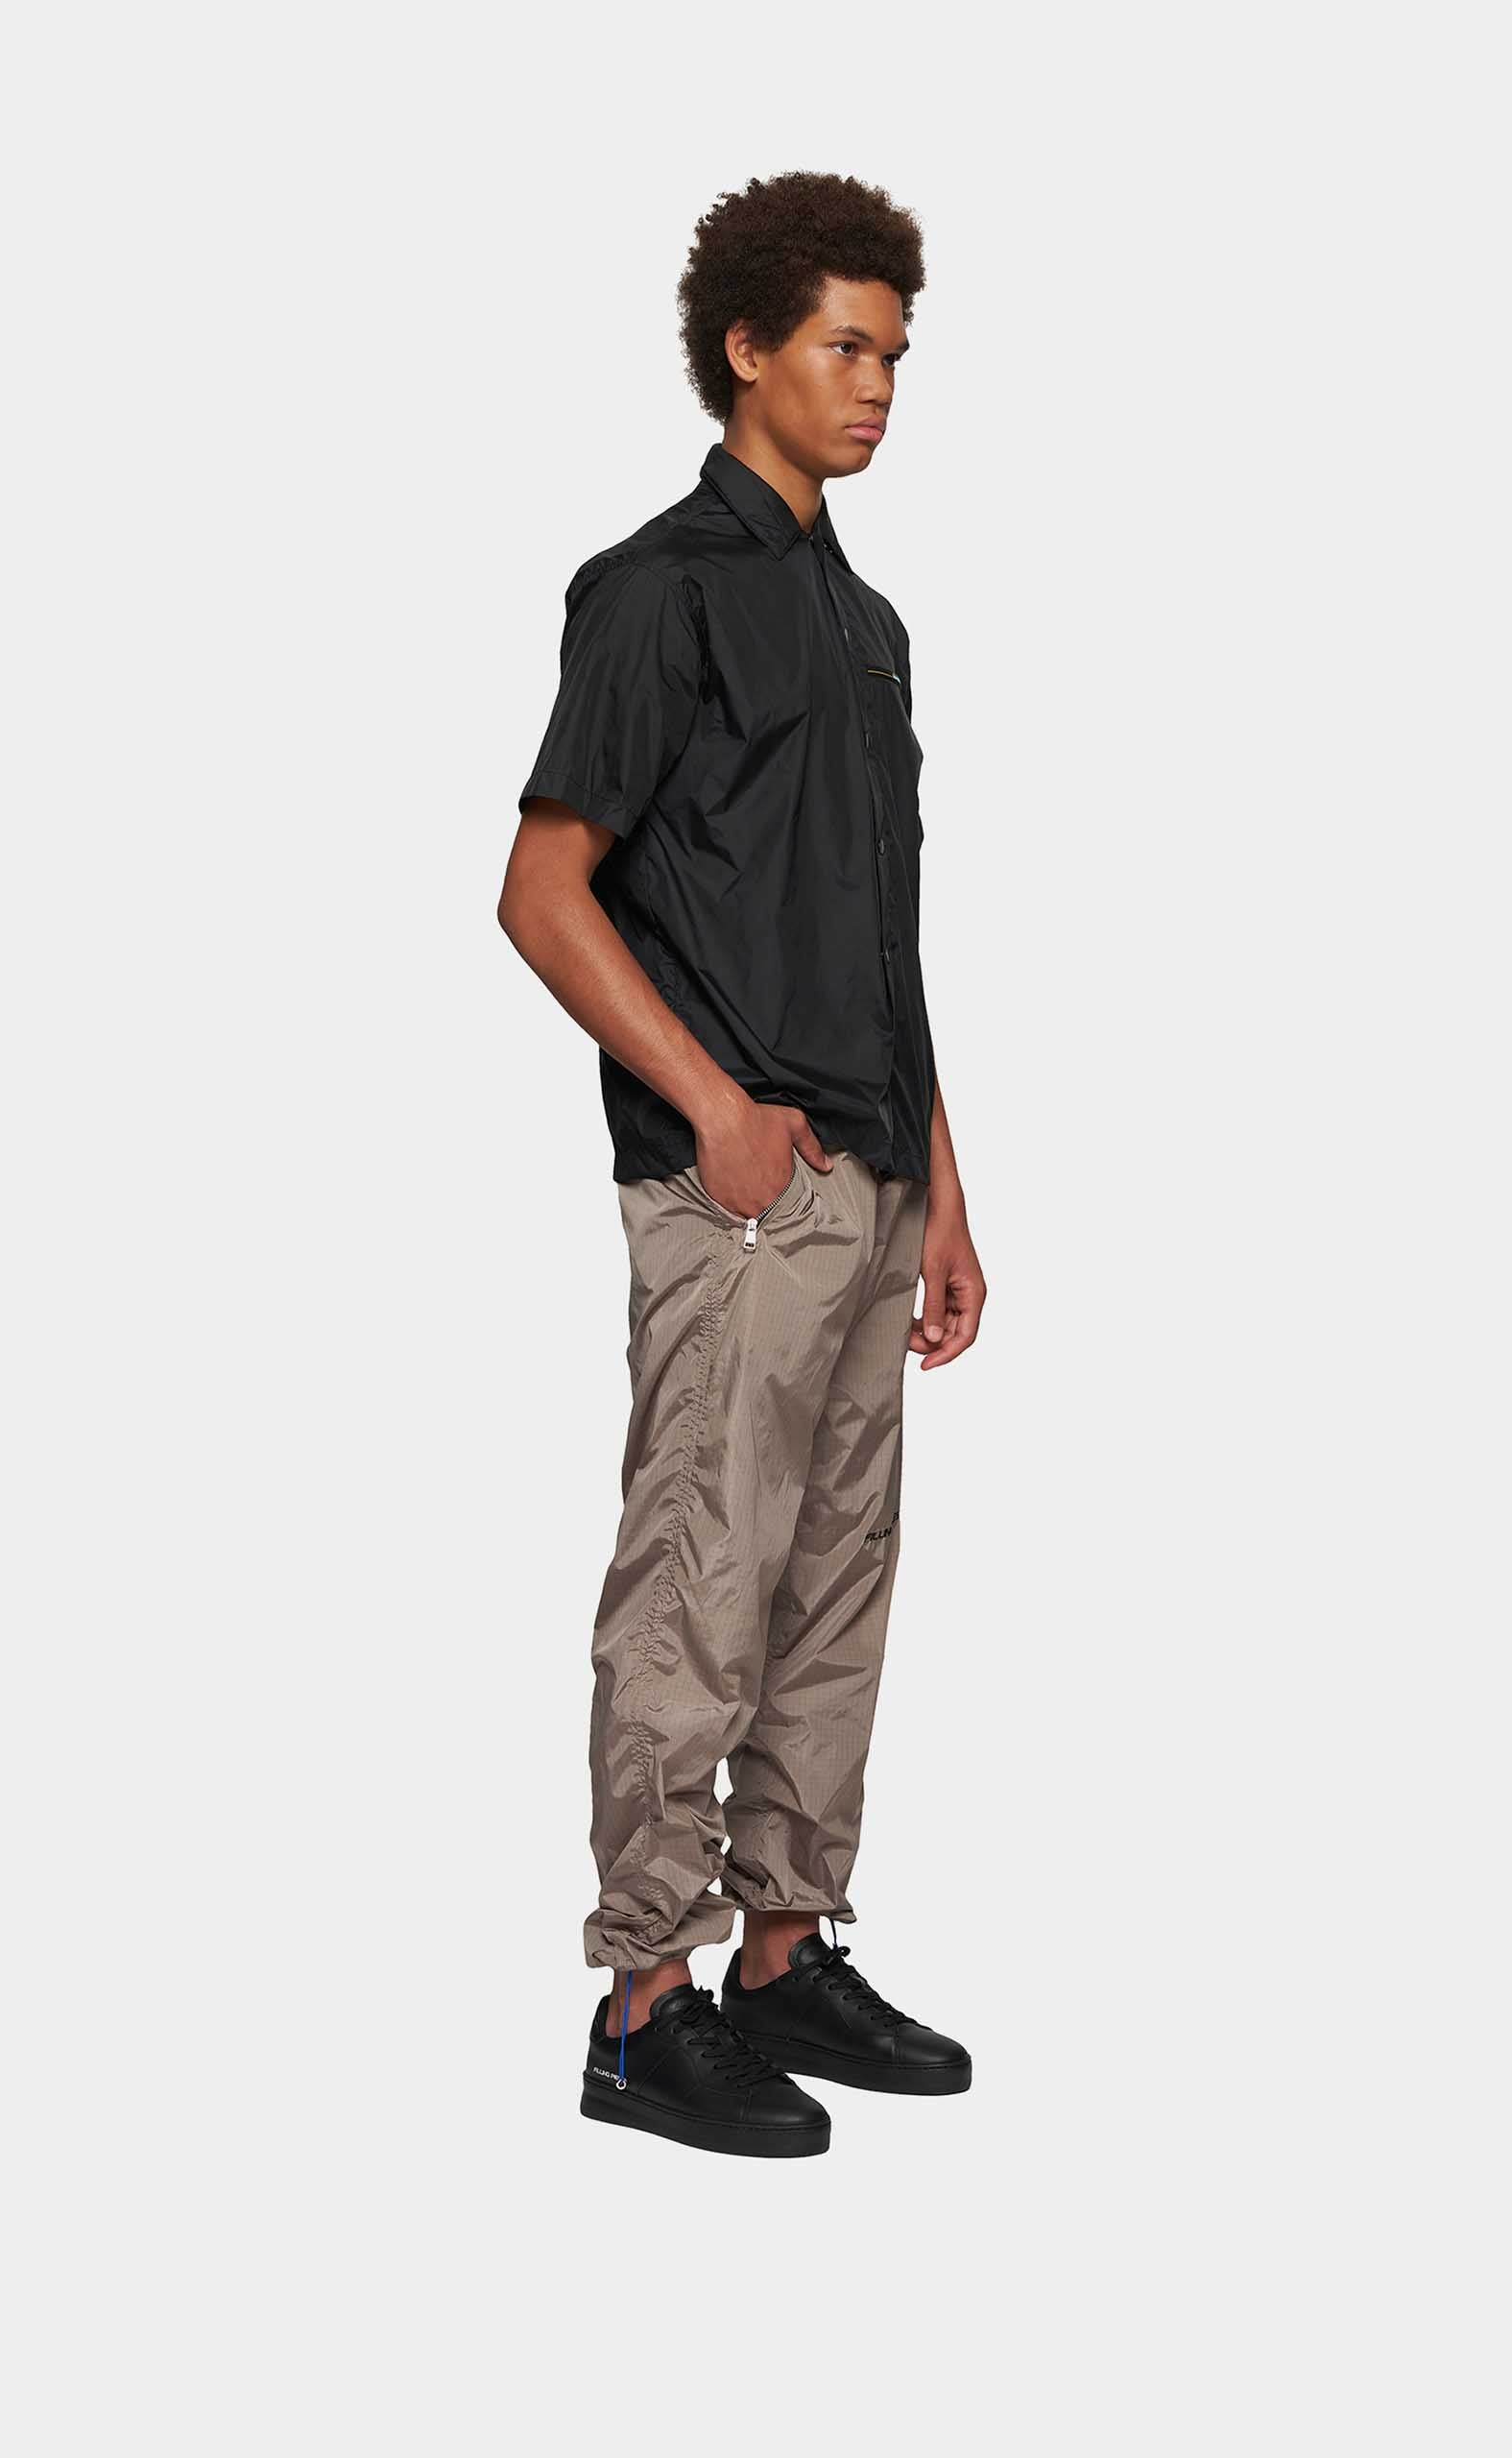 Nylon Cord Pants Pattern Black/Grey